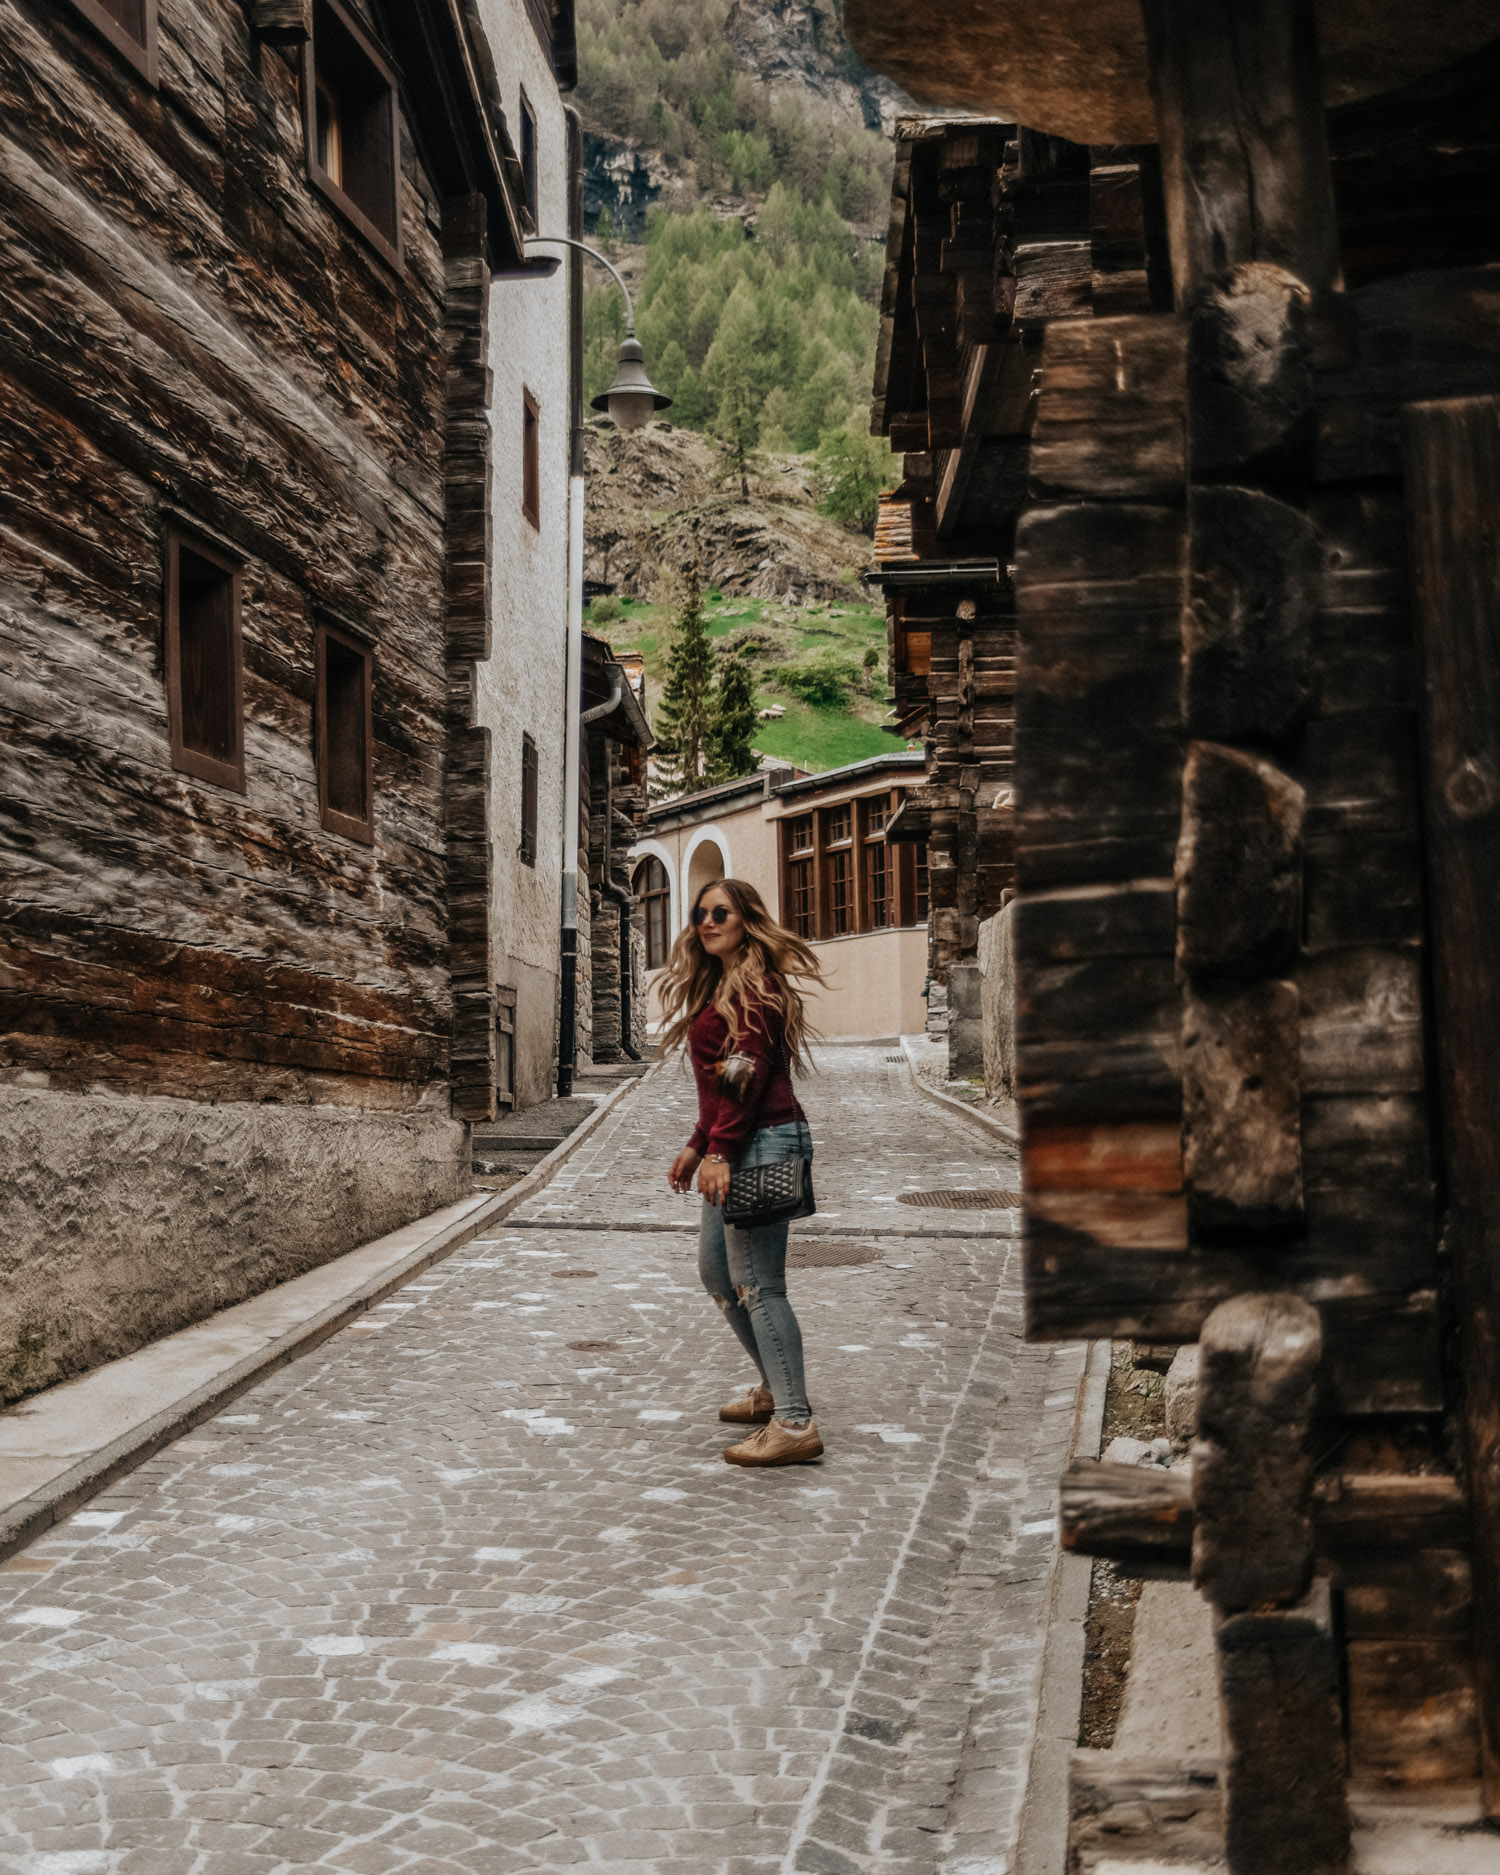 Things to do in Zermatt - Stroll through the old town